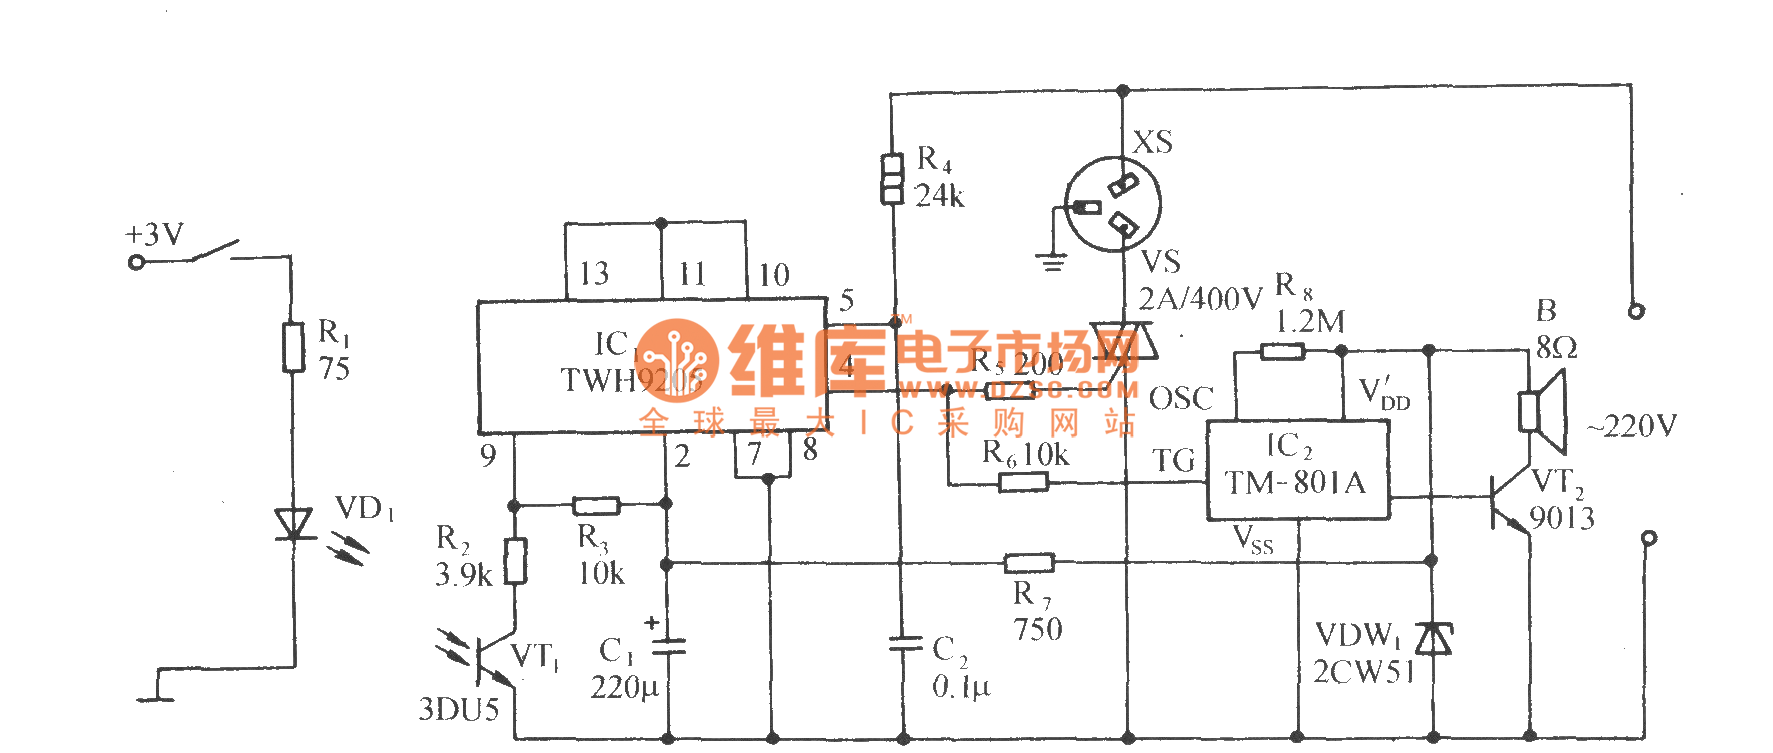 Photocoupling Zero Crossing Control Socket Circuit Using Twh9205 Electric Sunroof Basiccircuit Diagram Seekic